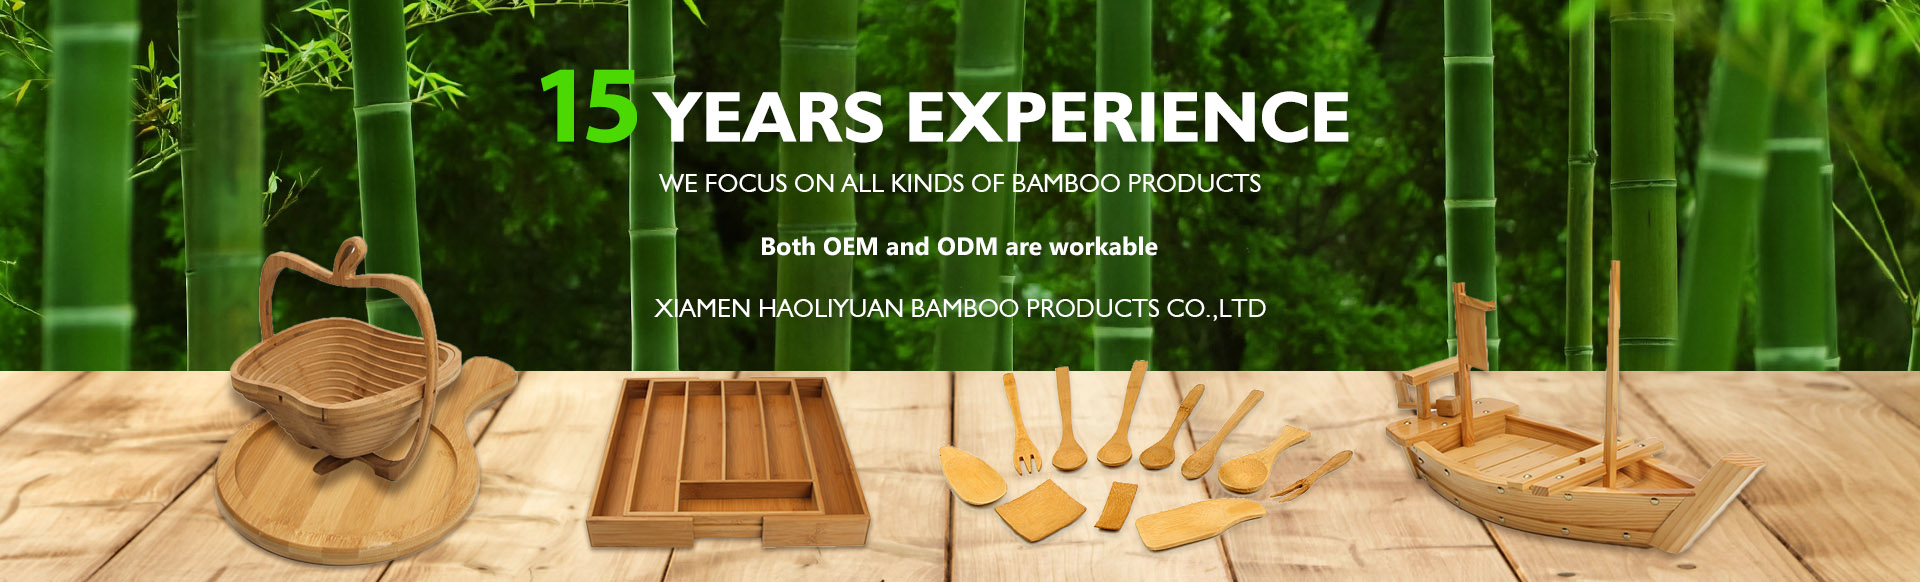 bamboo steamer uses